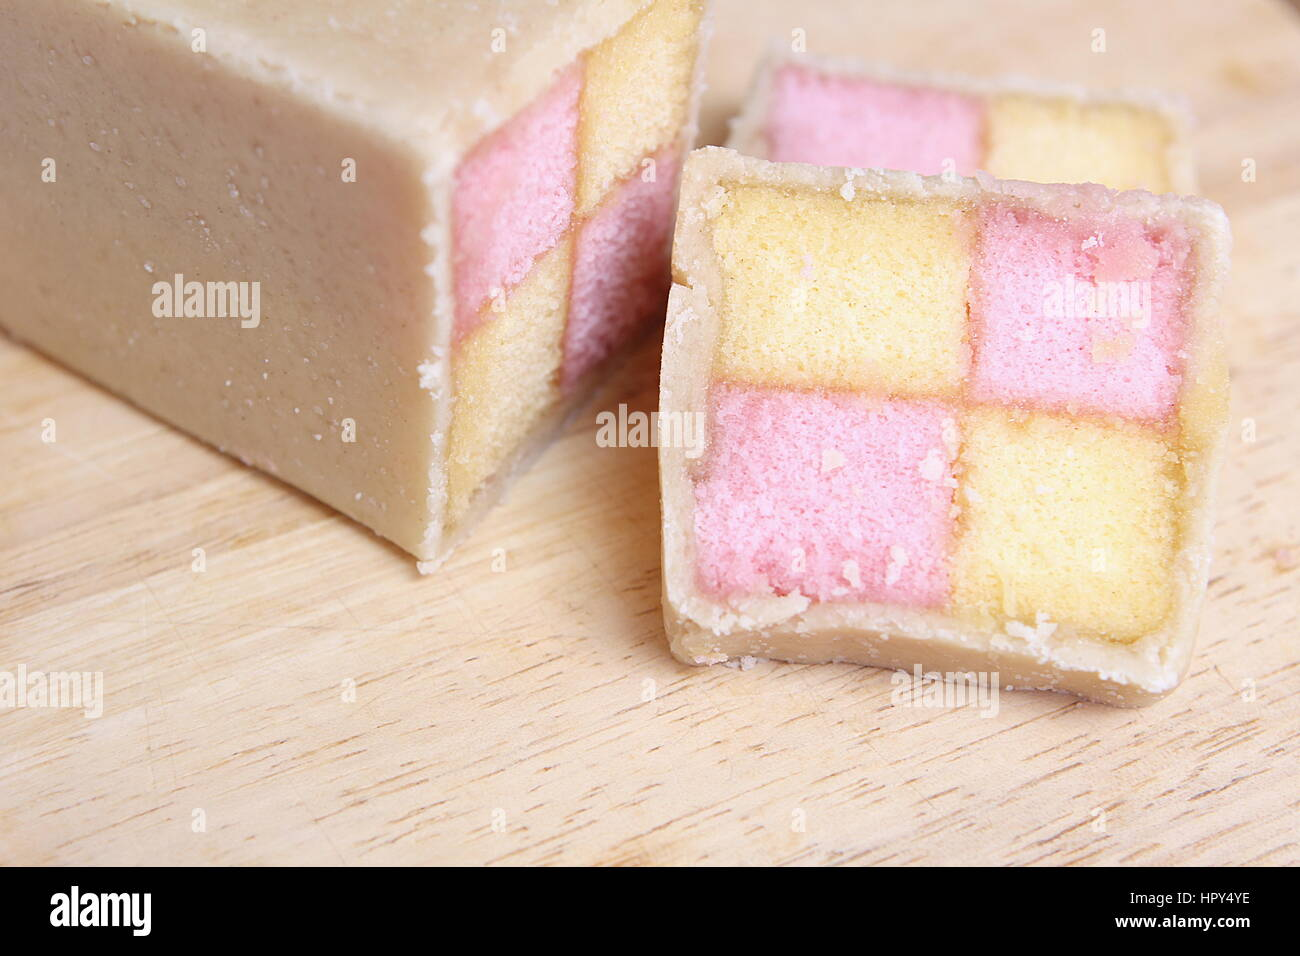 Freshly cut Battenberg Cake with pink and yellow sponge covered in marzipan - Stock Image